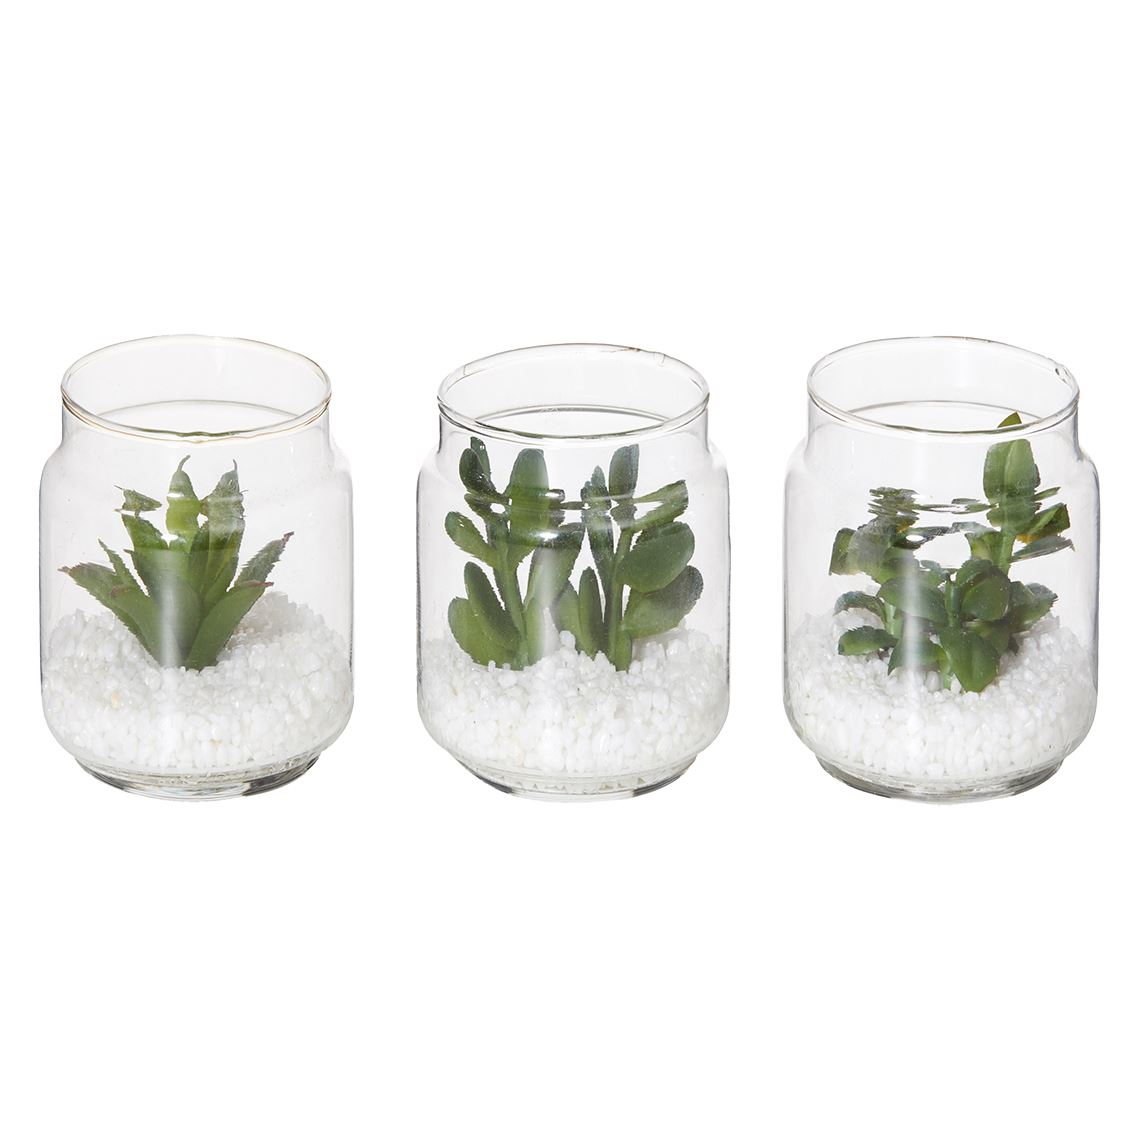 Mini Succulents Assorted Size W 9cm x D 9cm x H 7cm in Green Plastic/Glass Freedom by Freedom, a Plants for sale on Style Sourcebook